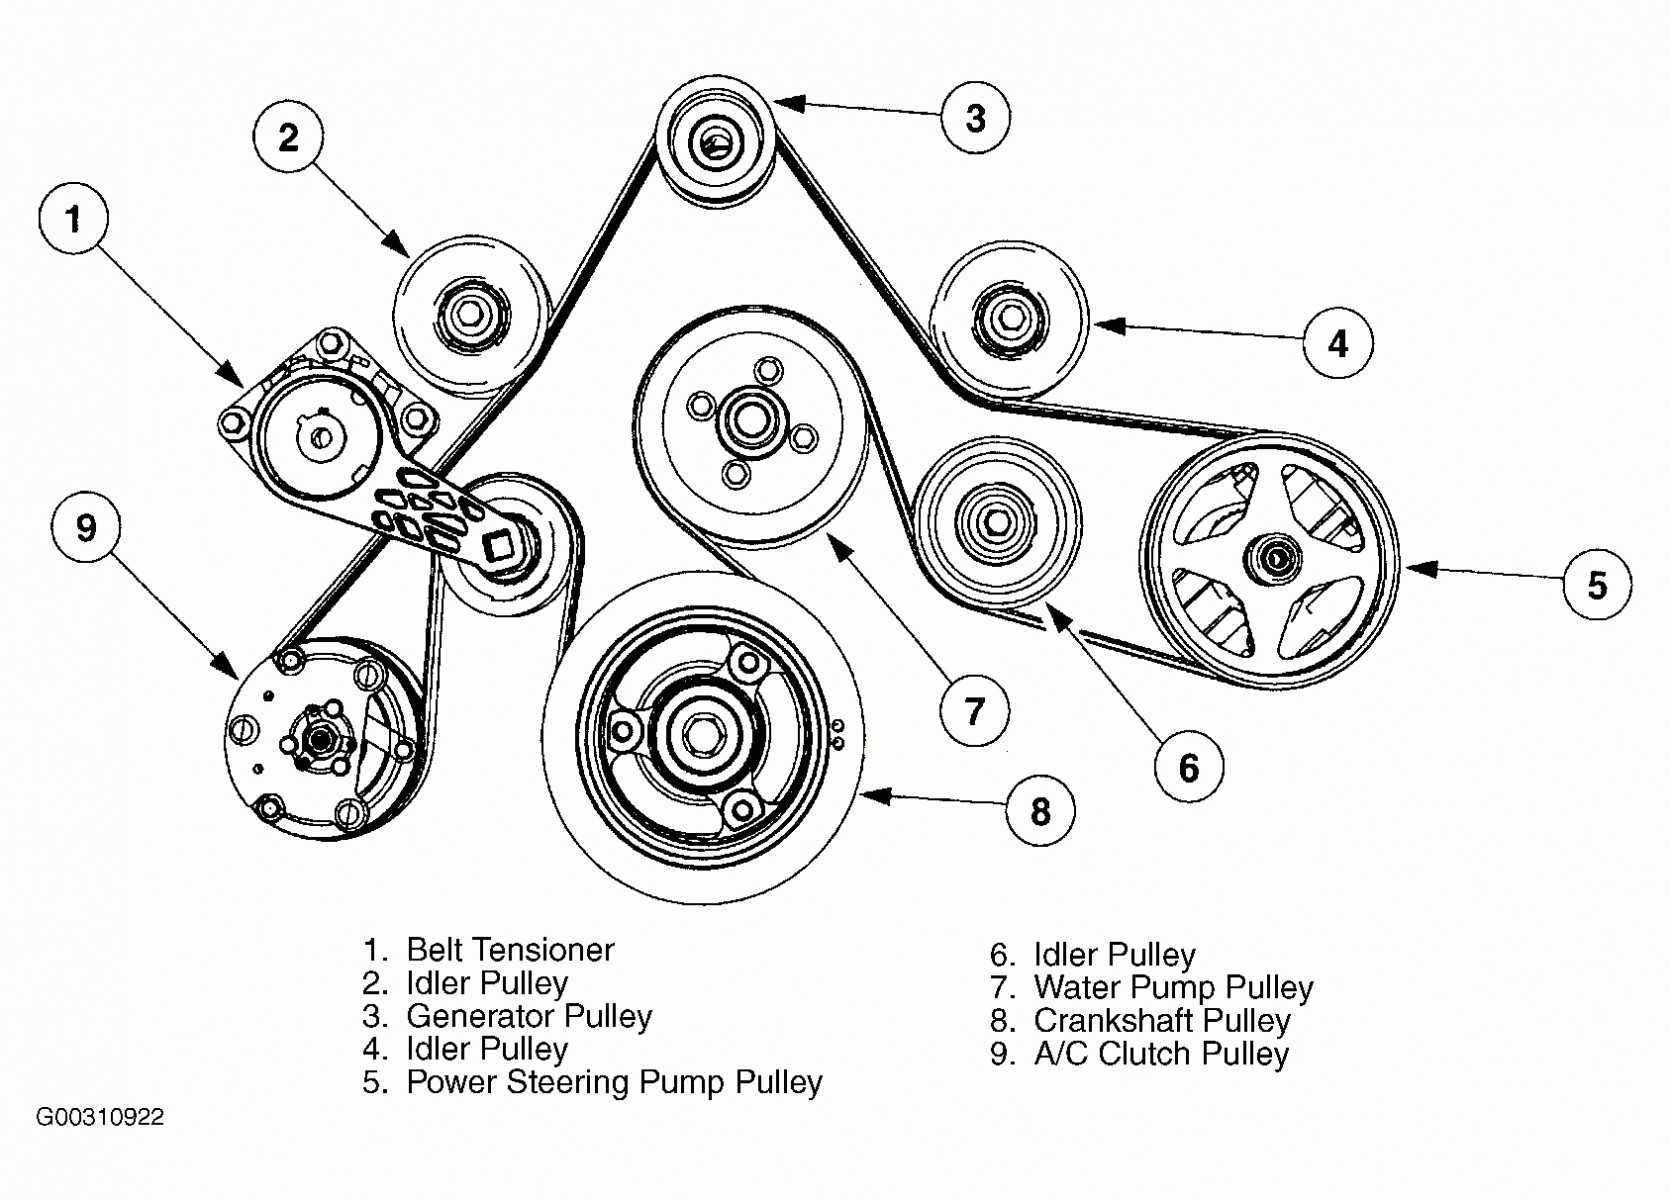 2003 ford f150 engine diagram 2003 ford taurus belt diagram my 2003 ford f150 engine diagram 2003 ford taurus belt diagram of 2003 ford f150 engine diagram